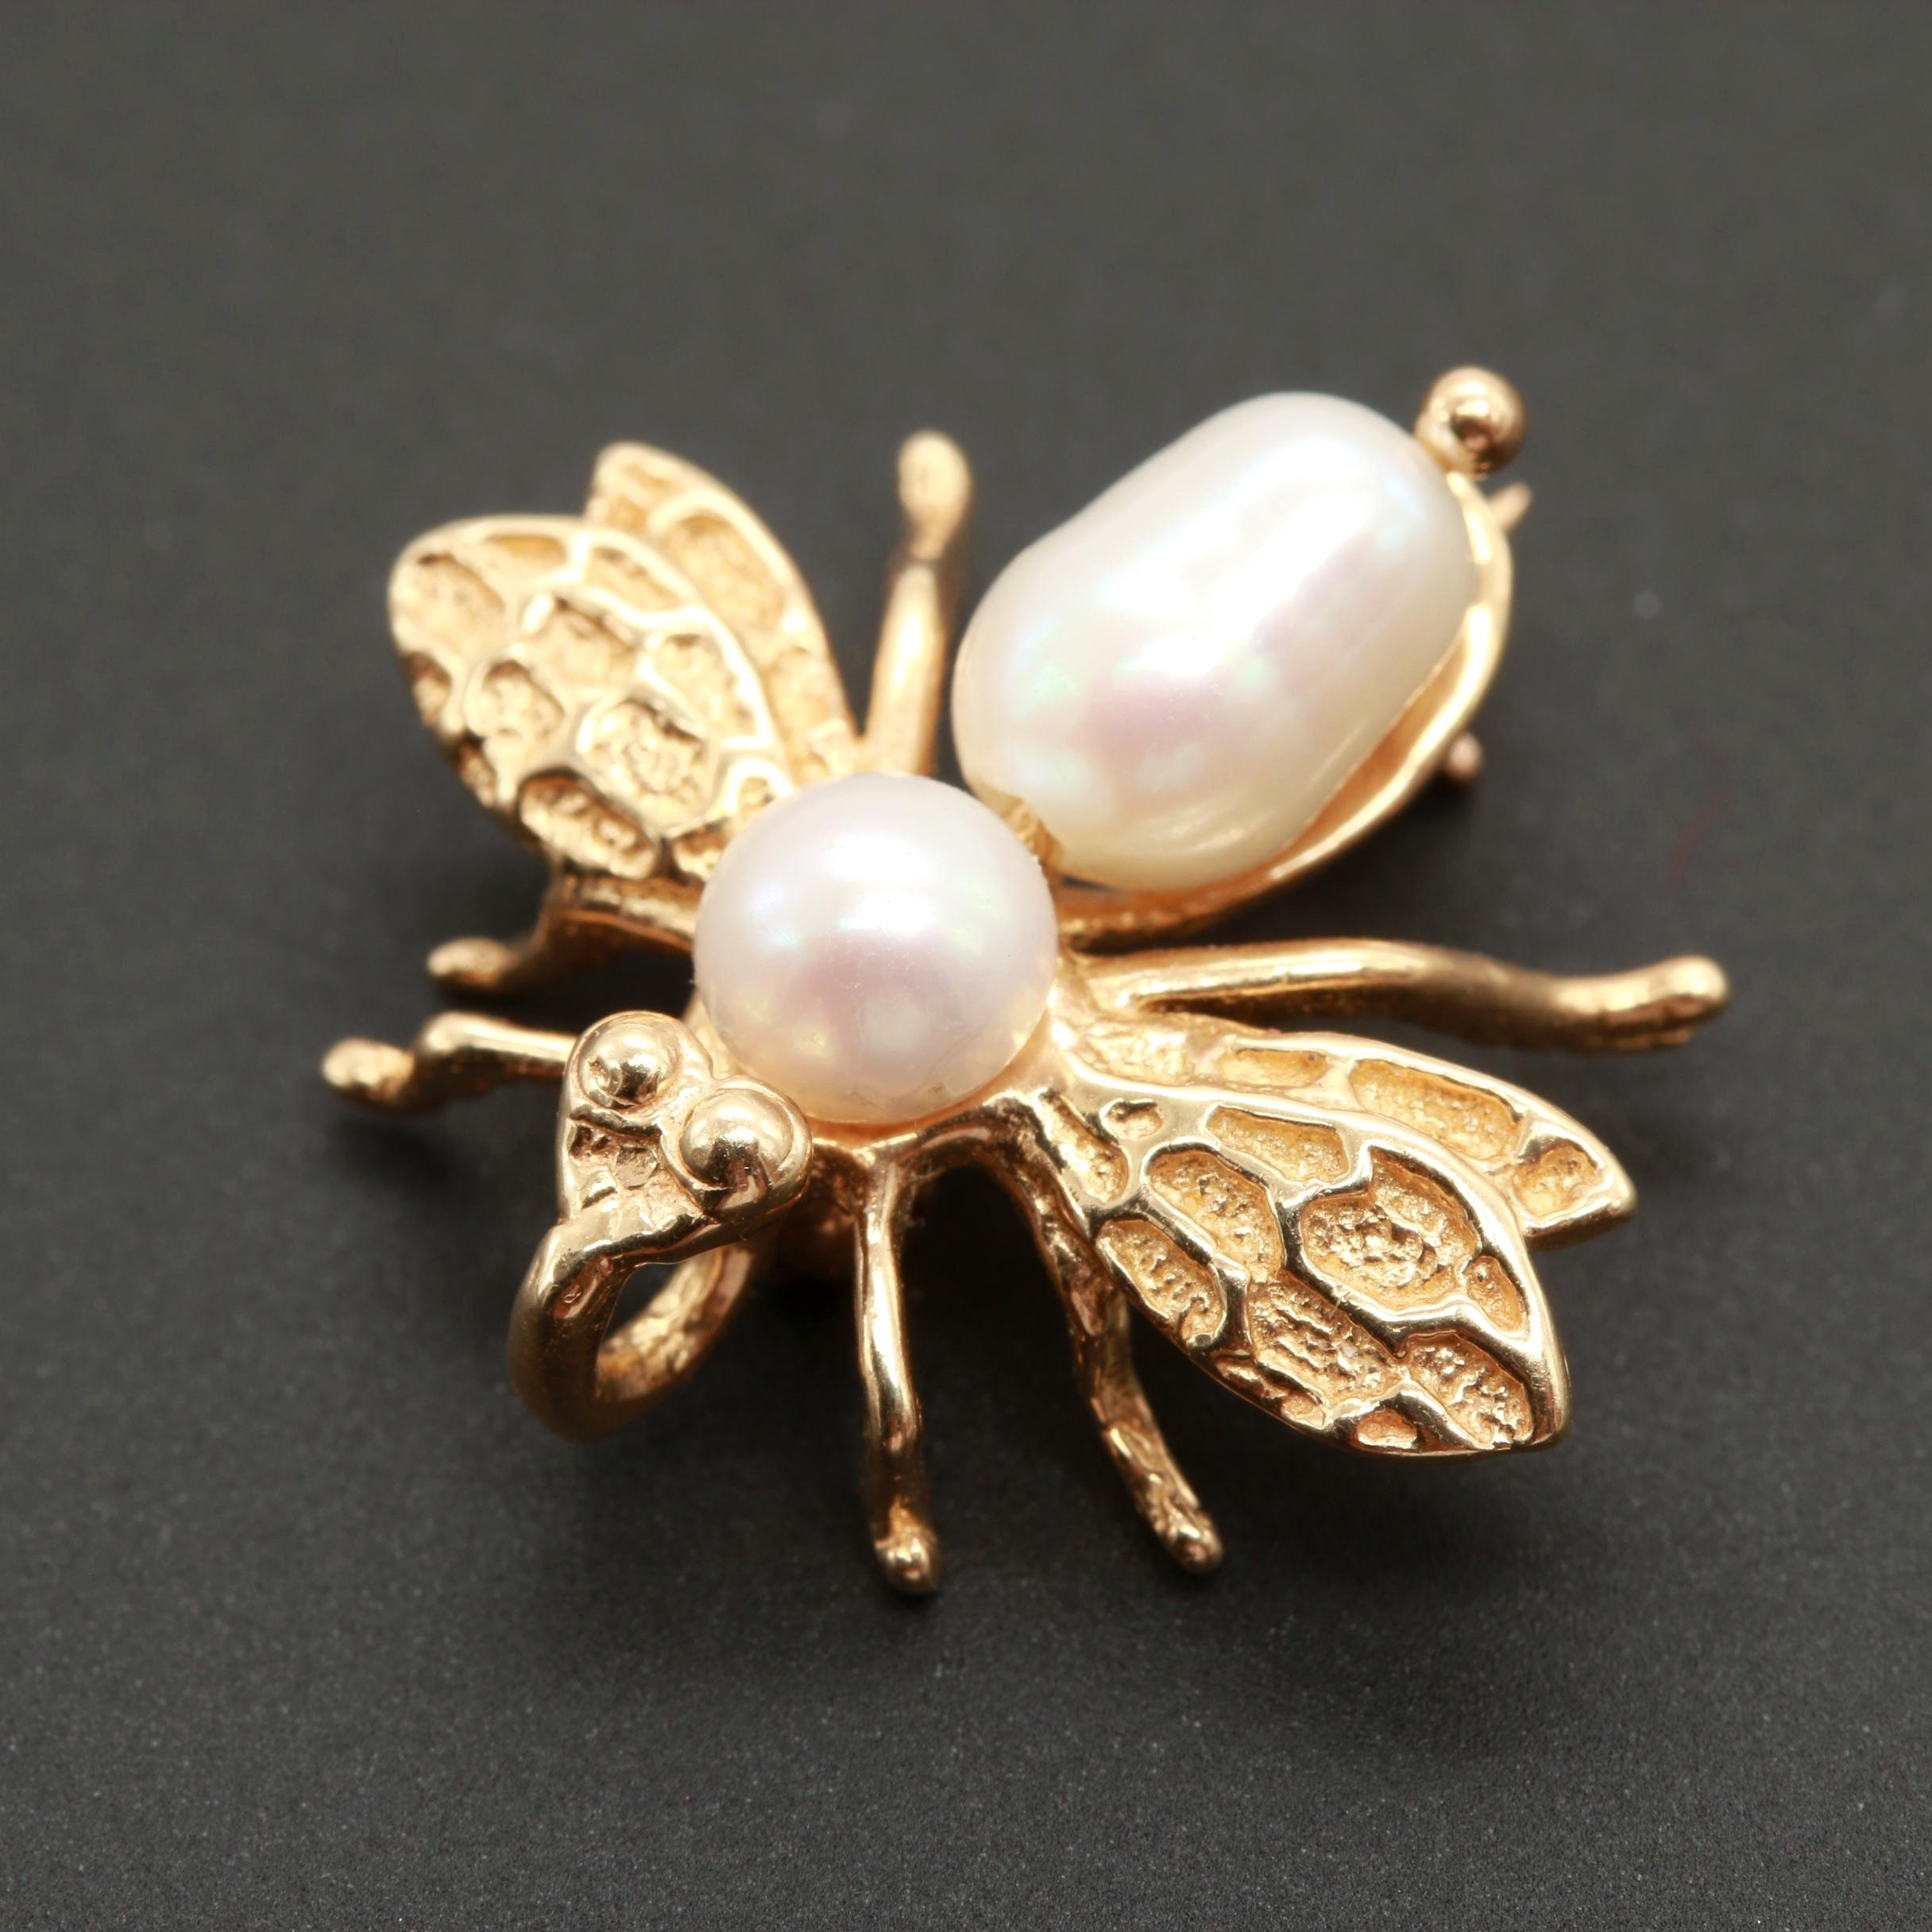 14K Yellow Gold Cultured Pearl Winged Insect Converter Brooch